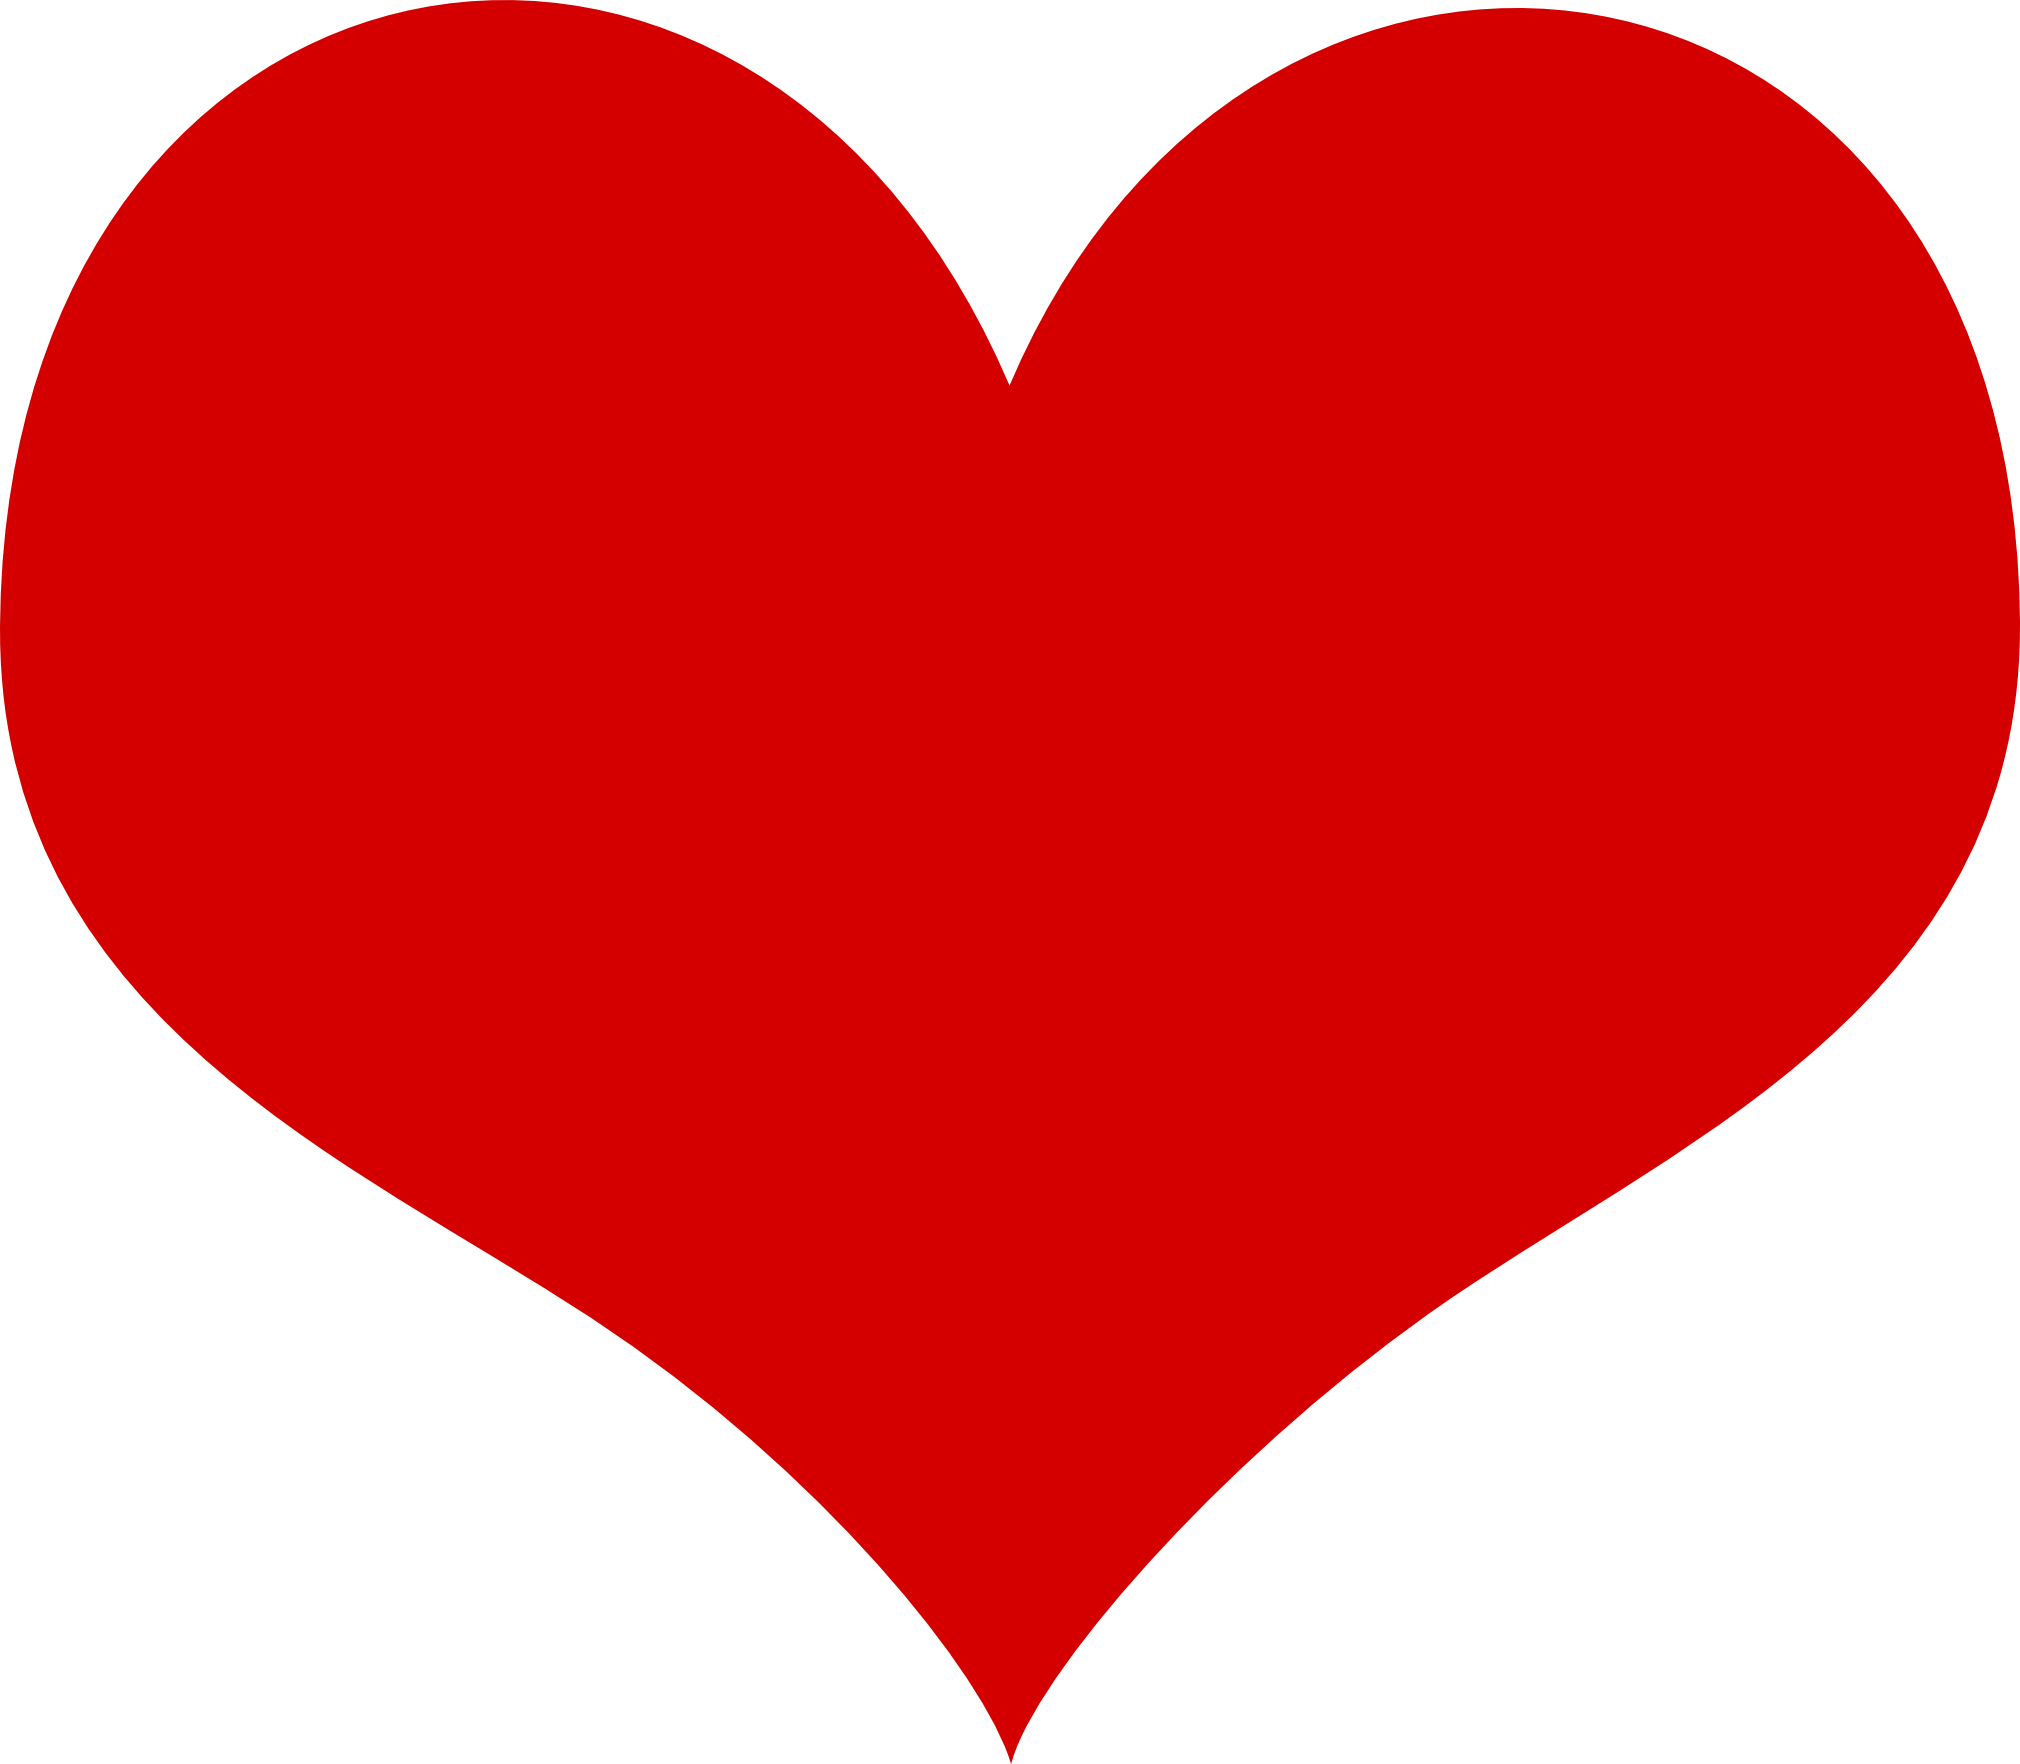 love, transparent heart png hd